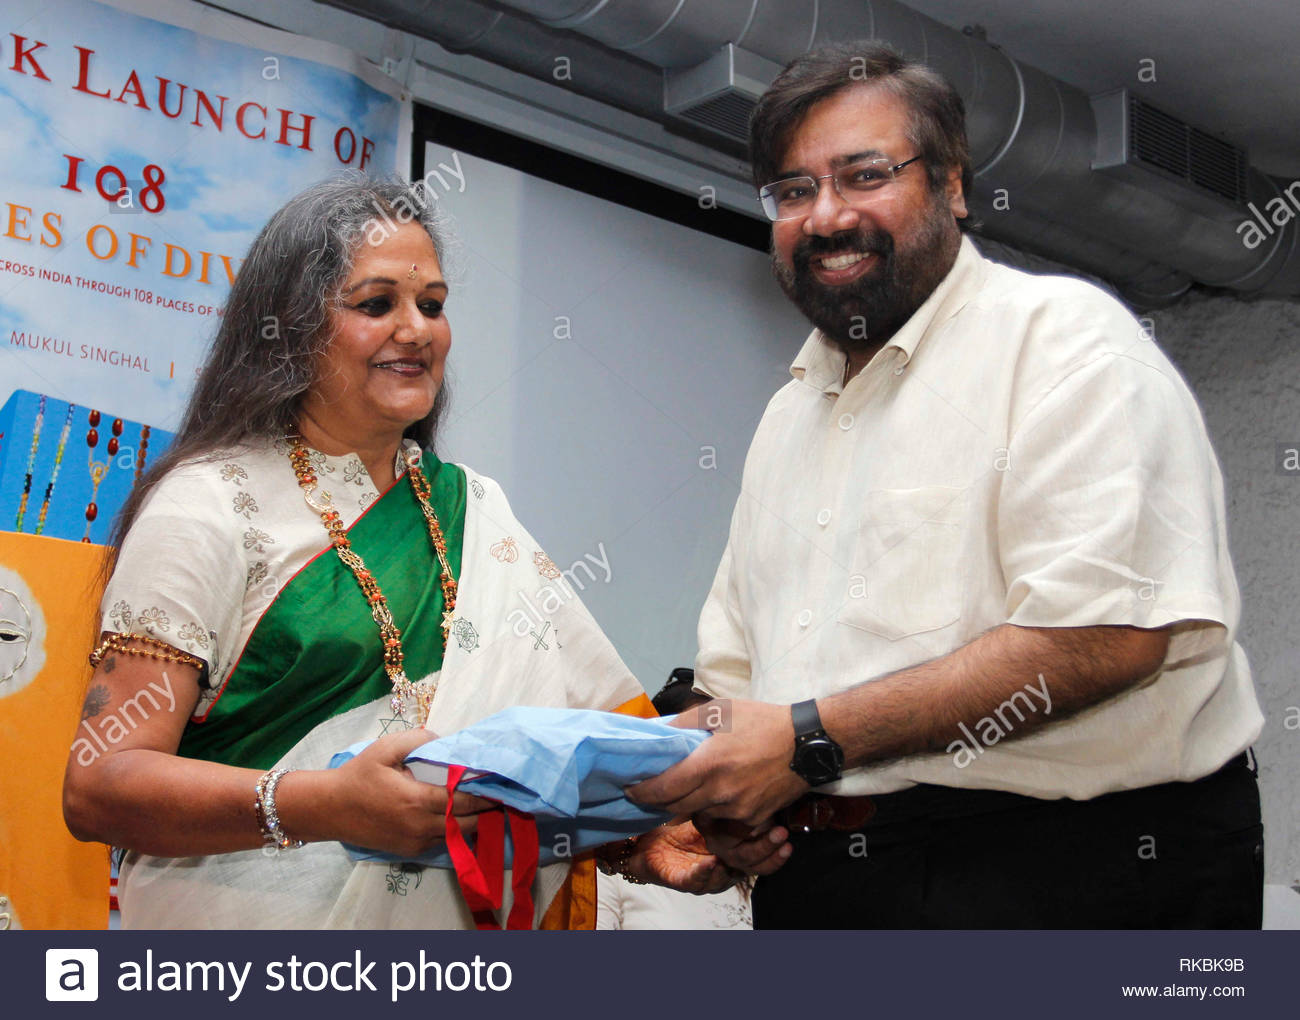 Author Anju Poddar with Harsh Goenka, chairman, RPG Enterprises  during the launch of her book 108 Shades of Divinity in Mumbai, India on May 26, 2013. (Rupesh Khot) - Stock Image